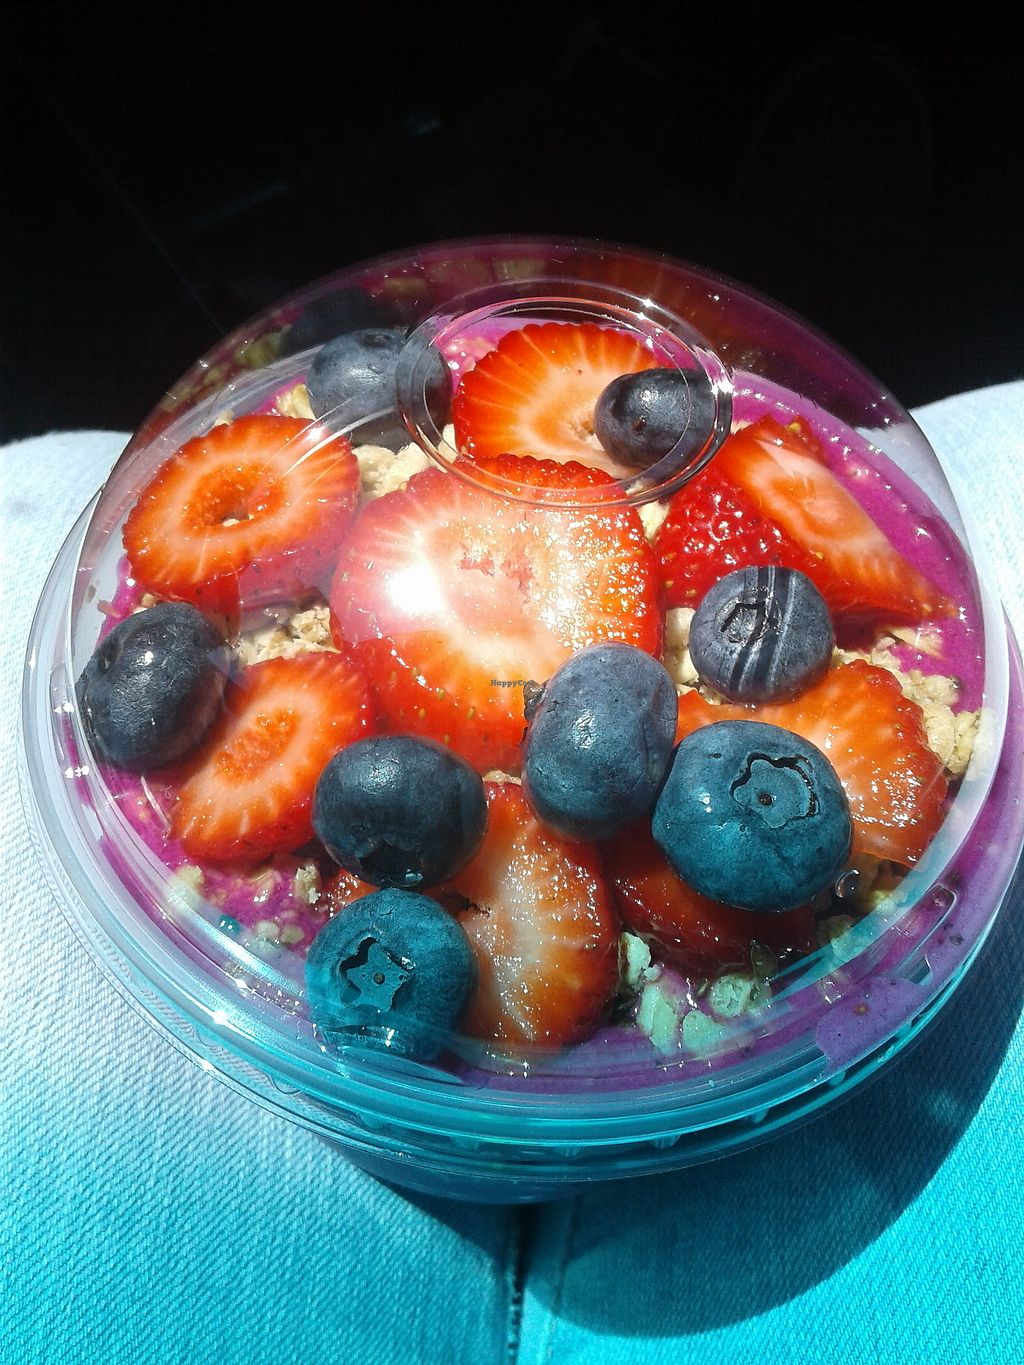 """Photo of Juice It Up - Iris Ave  by <a href=""""/members/profile/anastronomy"""">anastronomy</a> <br/>Pitaya bowl without honey <br/> August 18, 2017  - <a href='/contact/abuse/image/85167/294030'>Report</a>"""